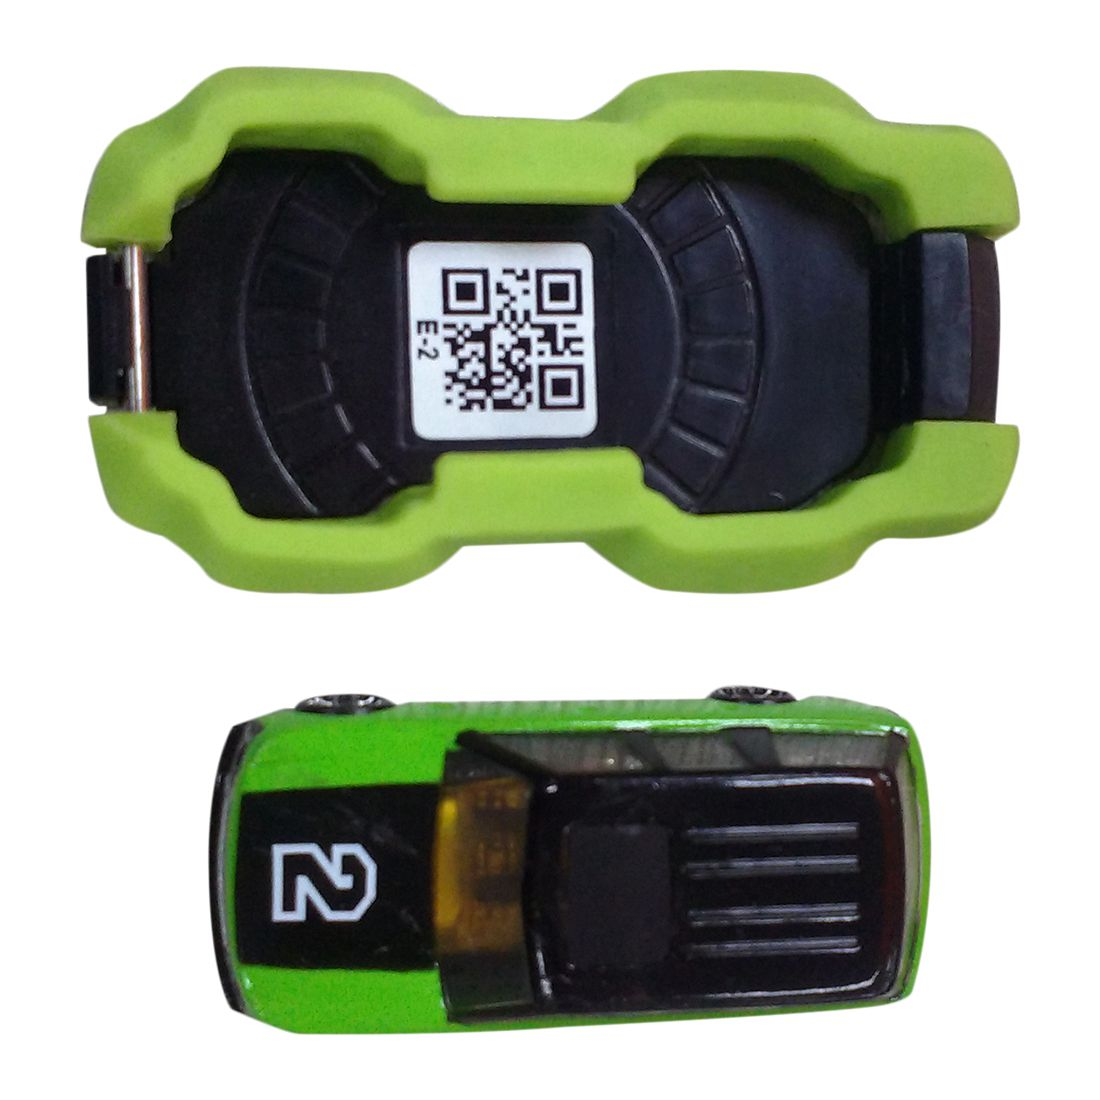 HOT SALE Creative toy phone AR aerial car model mobile phone racing sports game green